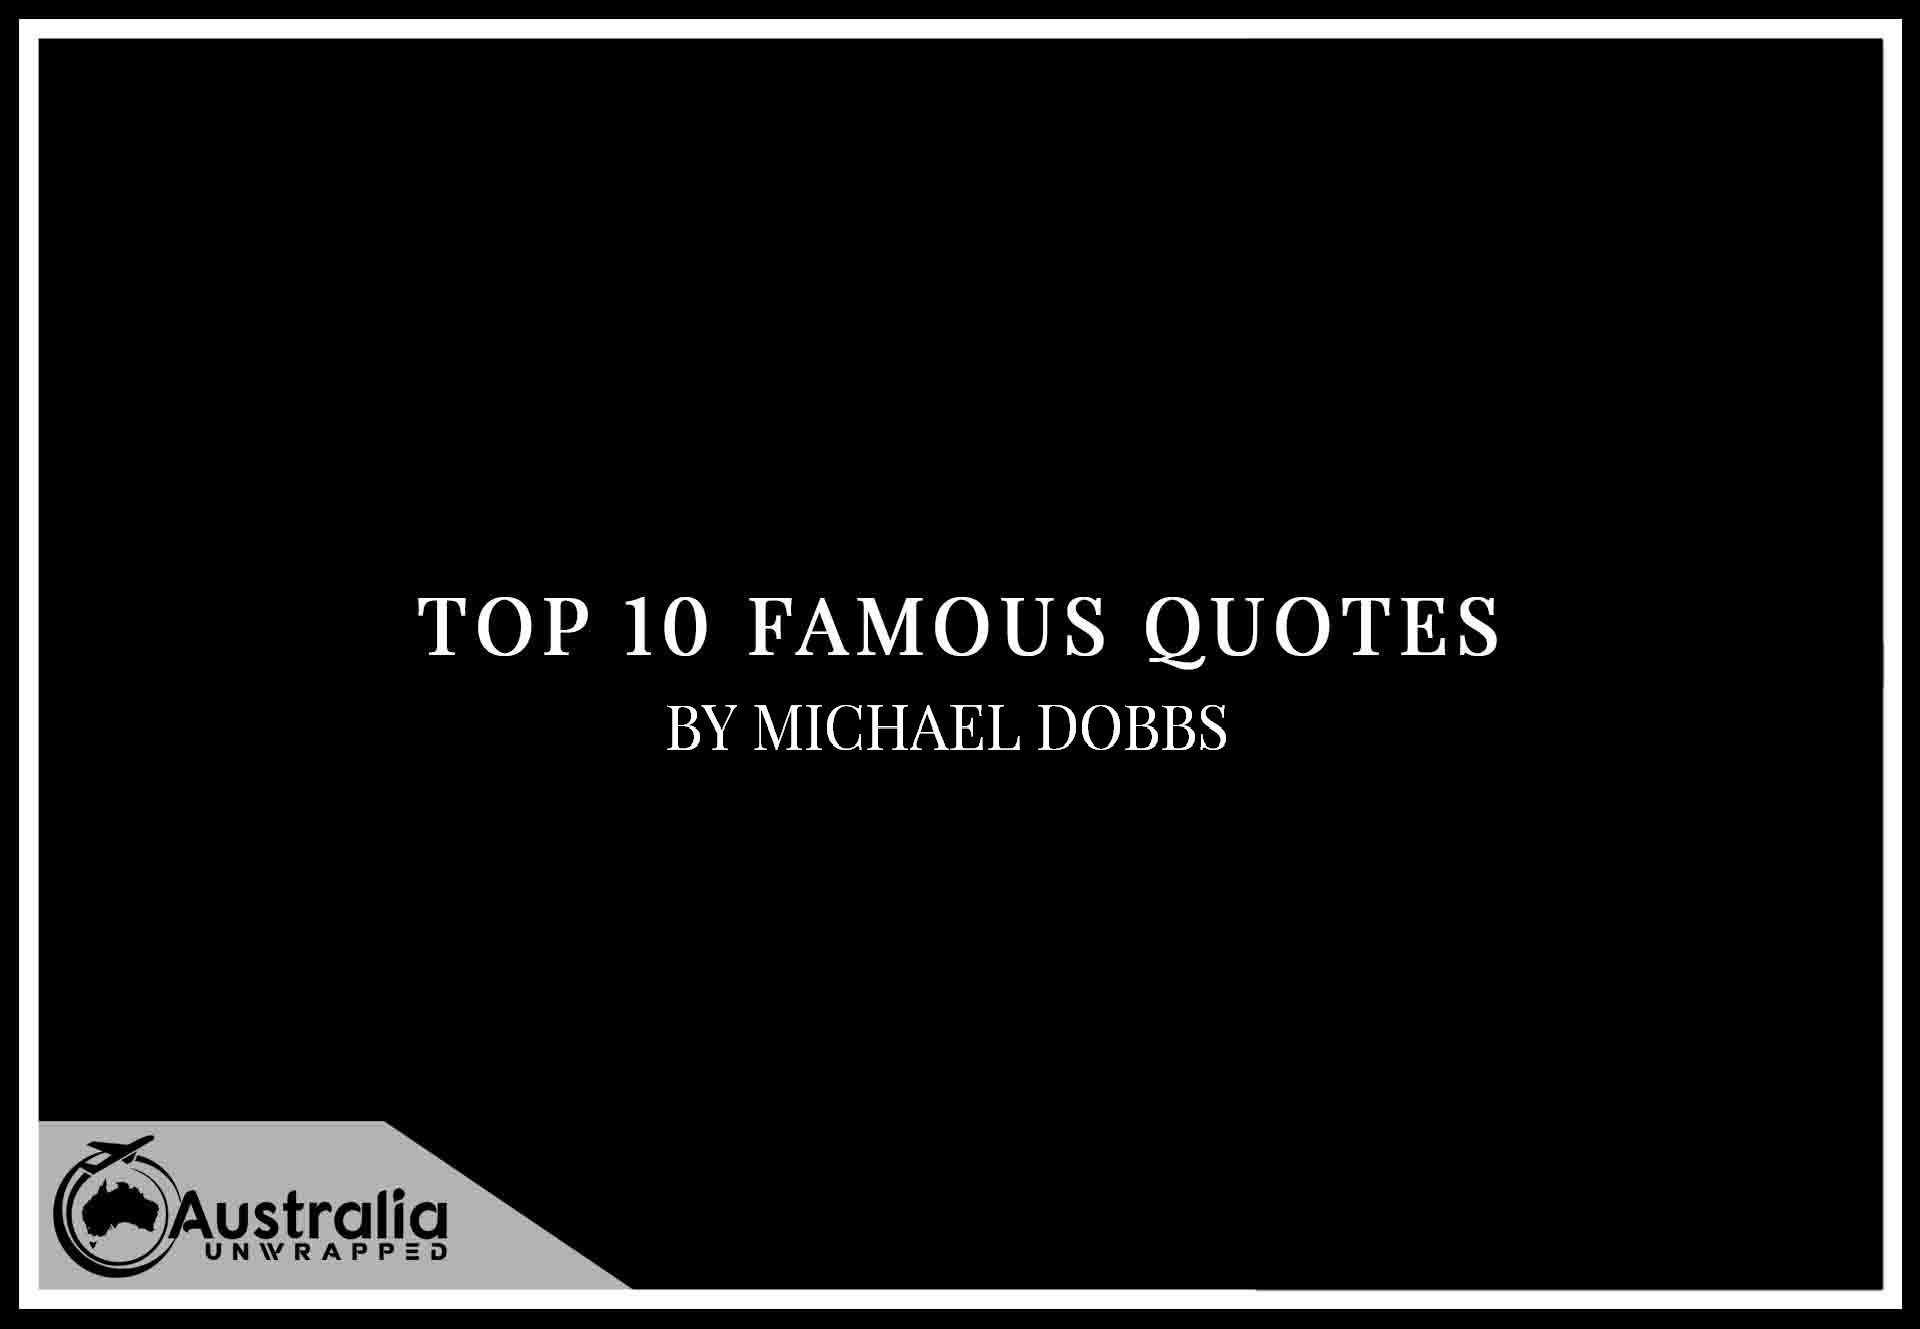 Top 10 Famous Quotes by Author Michael Dobbs